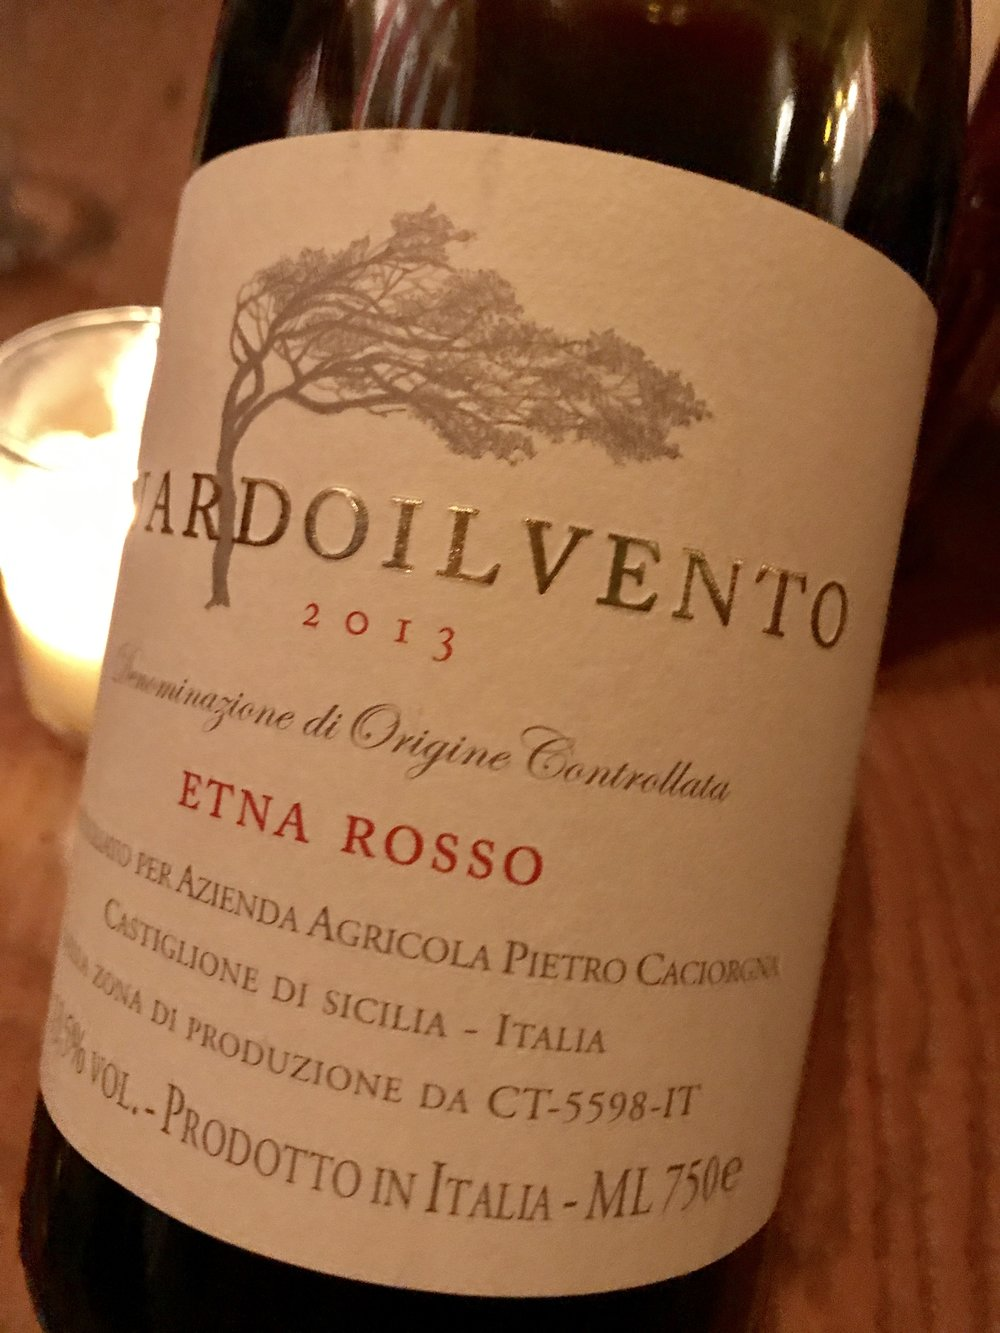 Grown in a thick layer of volcanic ash and Made from Nerello Mascalese and Nerello Cappuccio grapes, Etna Rosso wines from Sicily have great minerality and finesse.